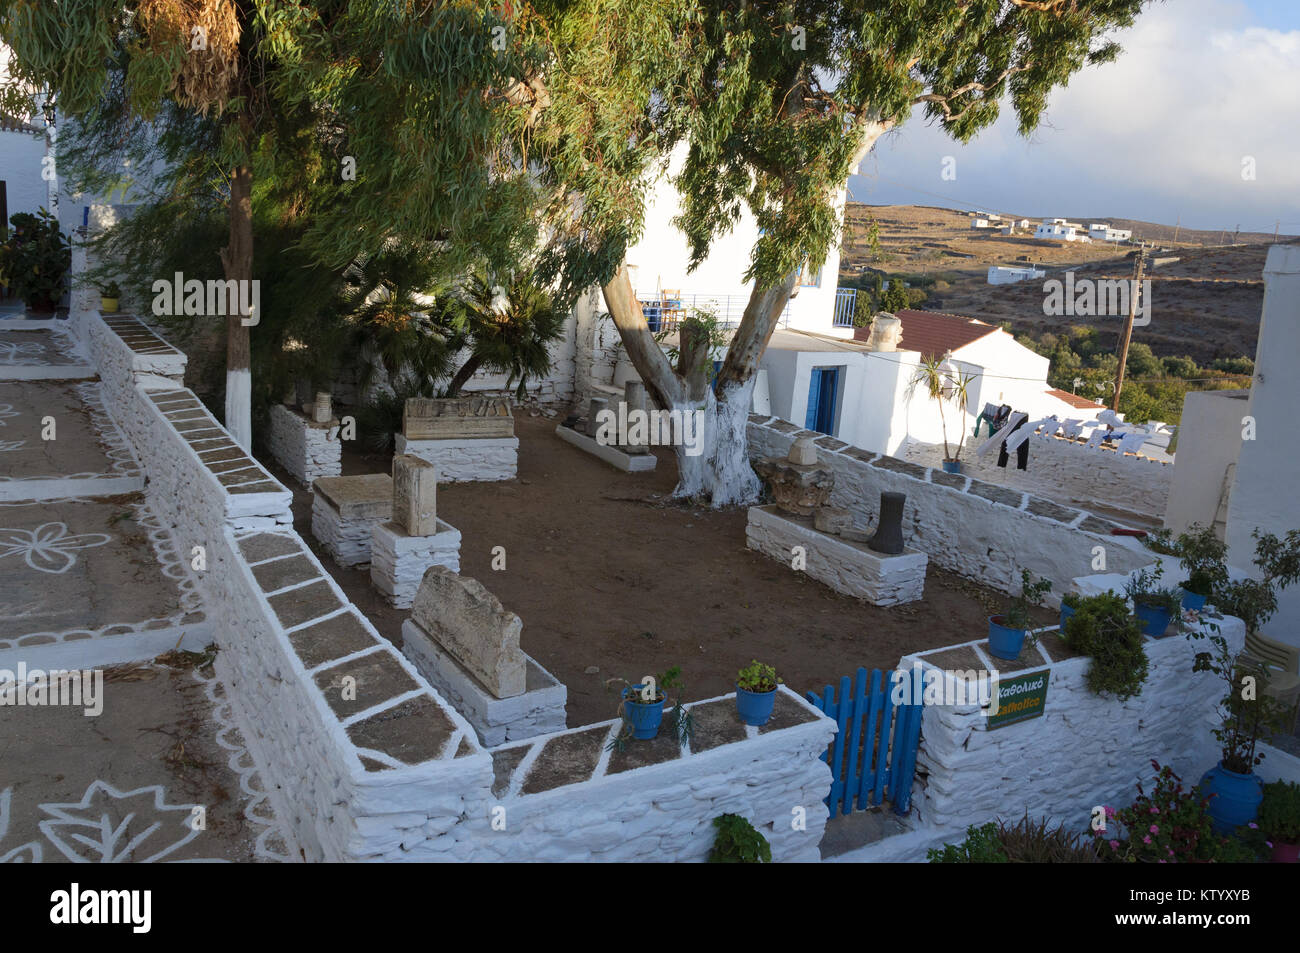 Fenced area in Kythnos chora with archeological findings - Stock Image